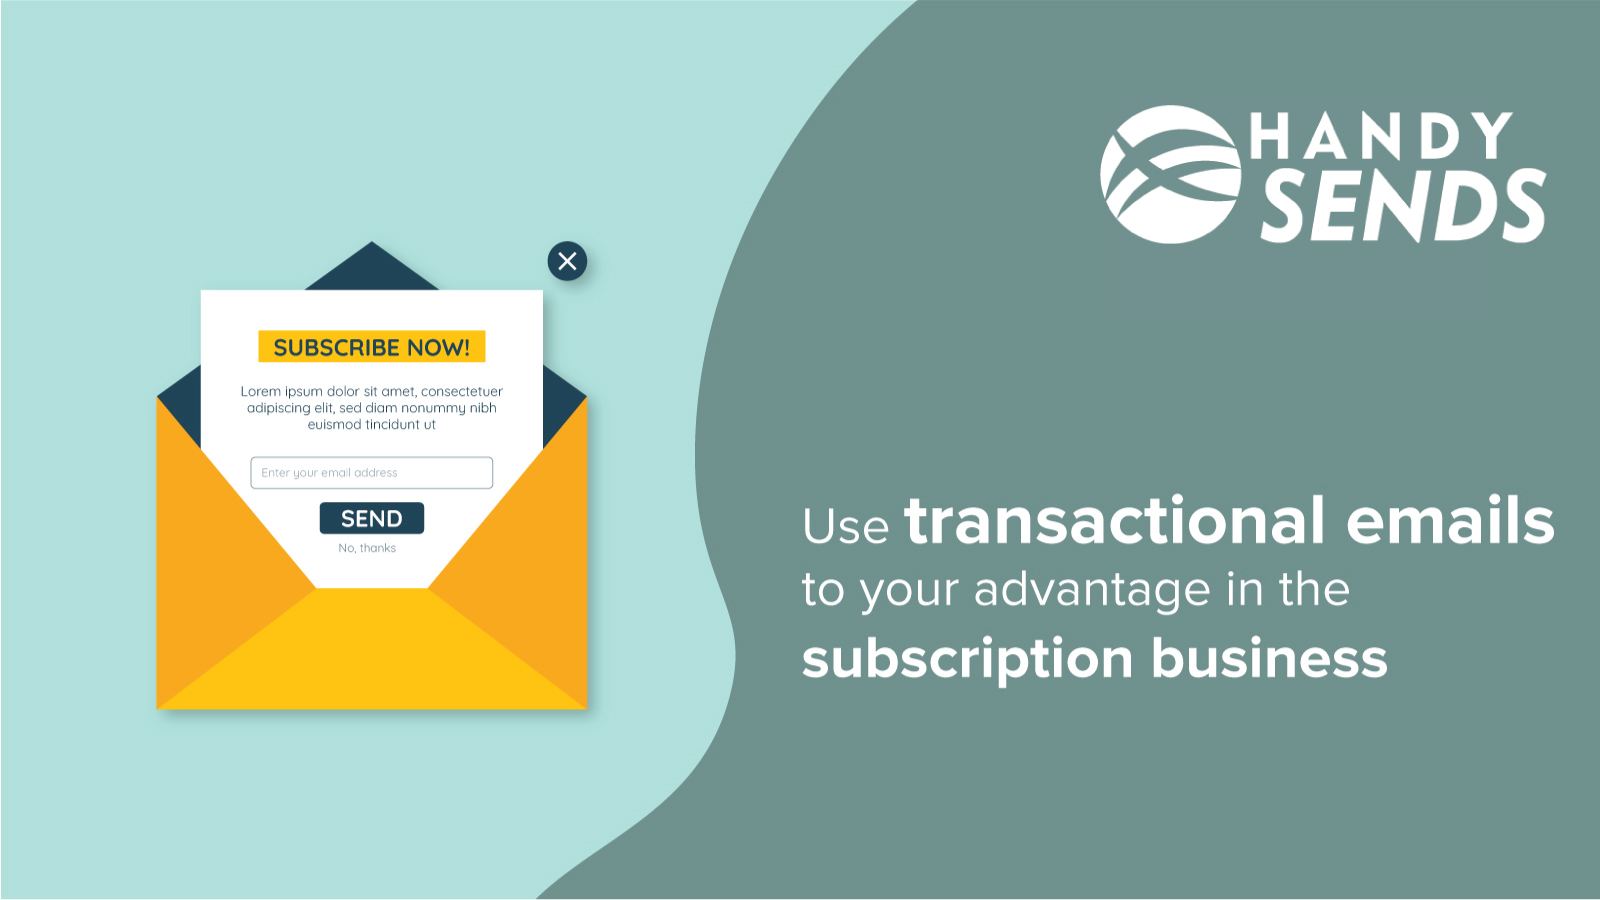 Use transactional emails to your advantage in the subscription business